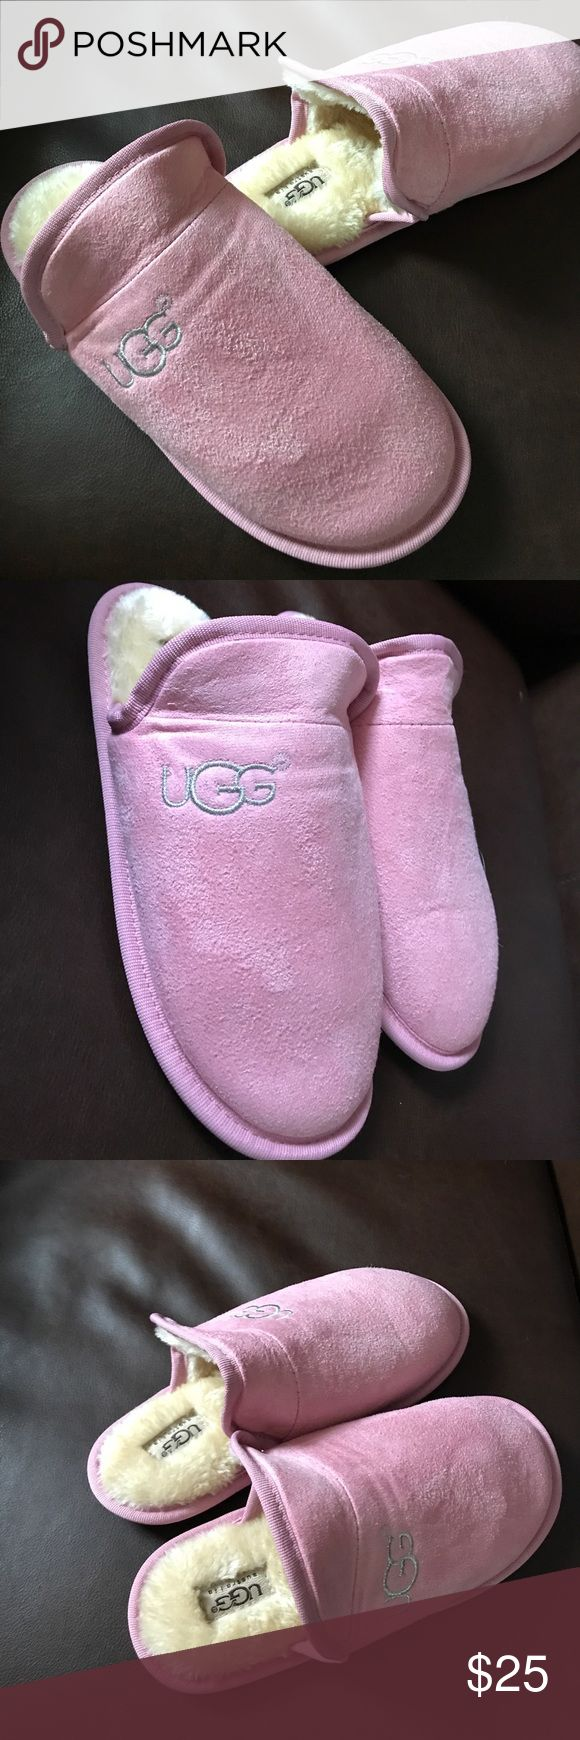 1HR SALE😱 NWOT! Ugg slippers size: 8 Brand New! Ugg slippers size:8 (38/39). They have absolutely no stains, marks, and are pet/smoke free. Were given as a gift and did not fit correctly. The fit on inside and outside are in excerpt condition. The bottoms have no marks:) Any questions ask below UGG Shoes Slippers